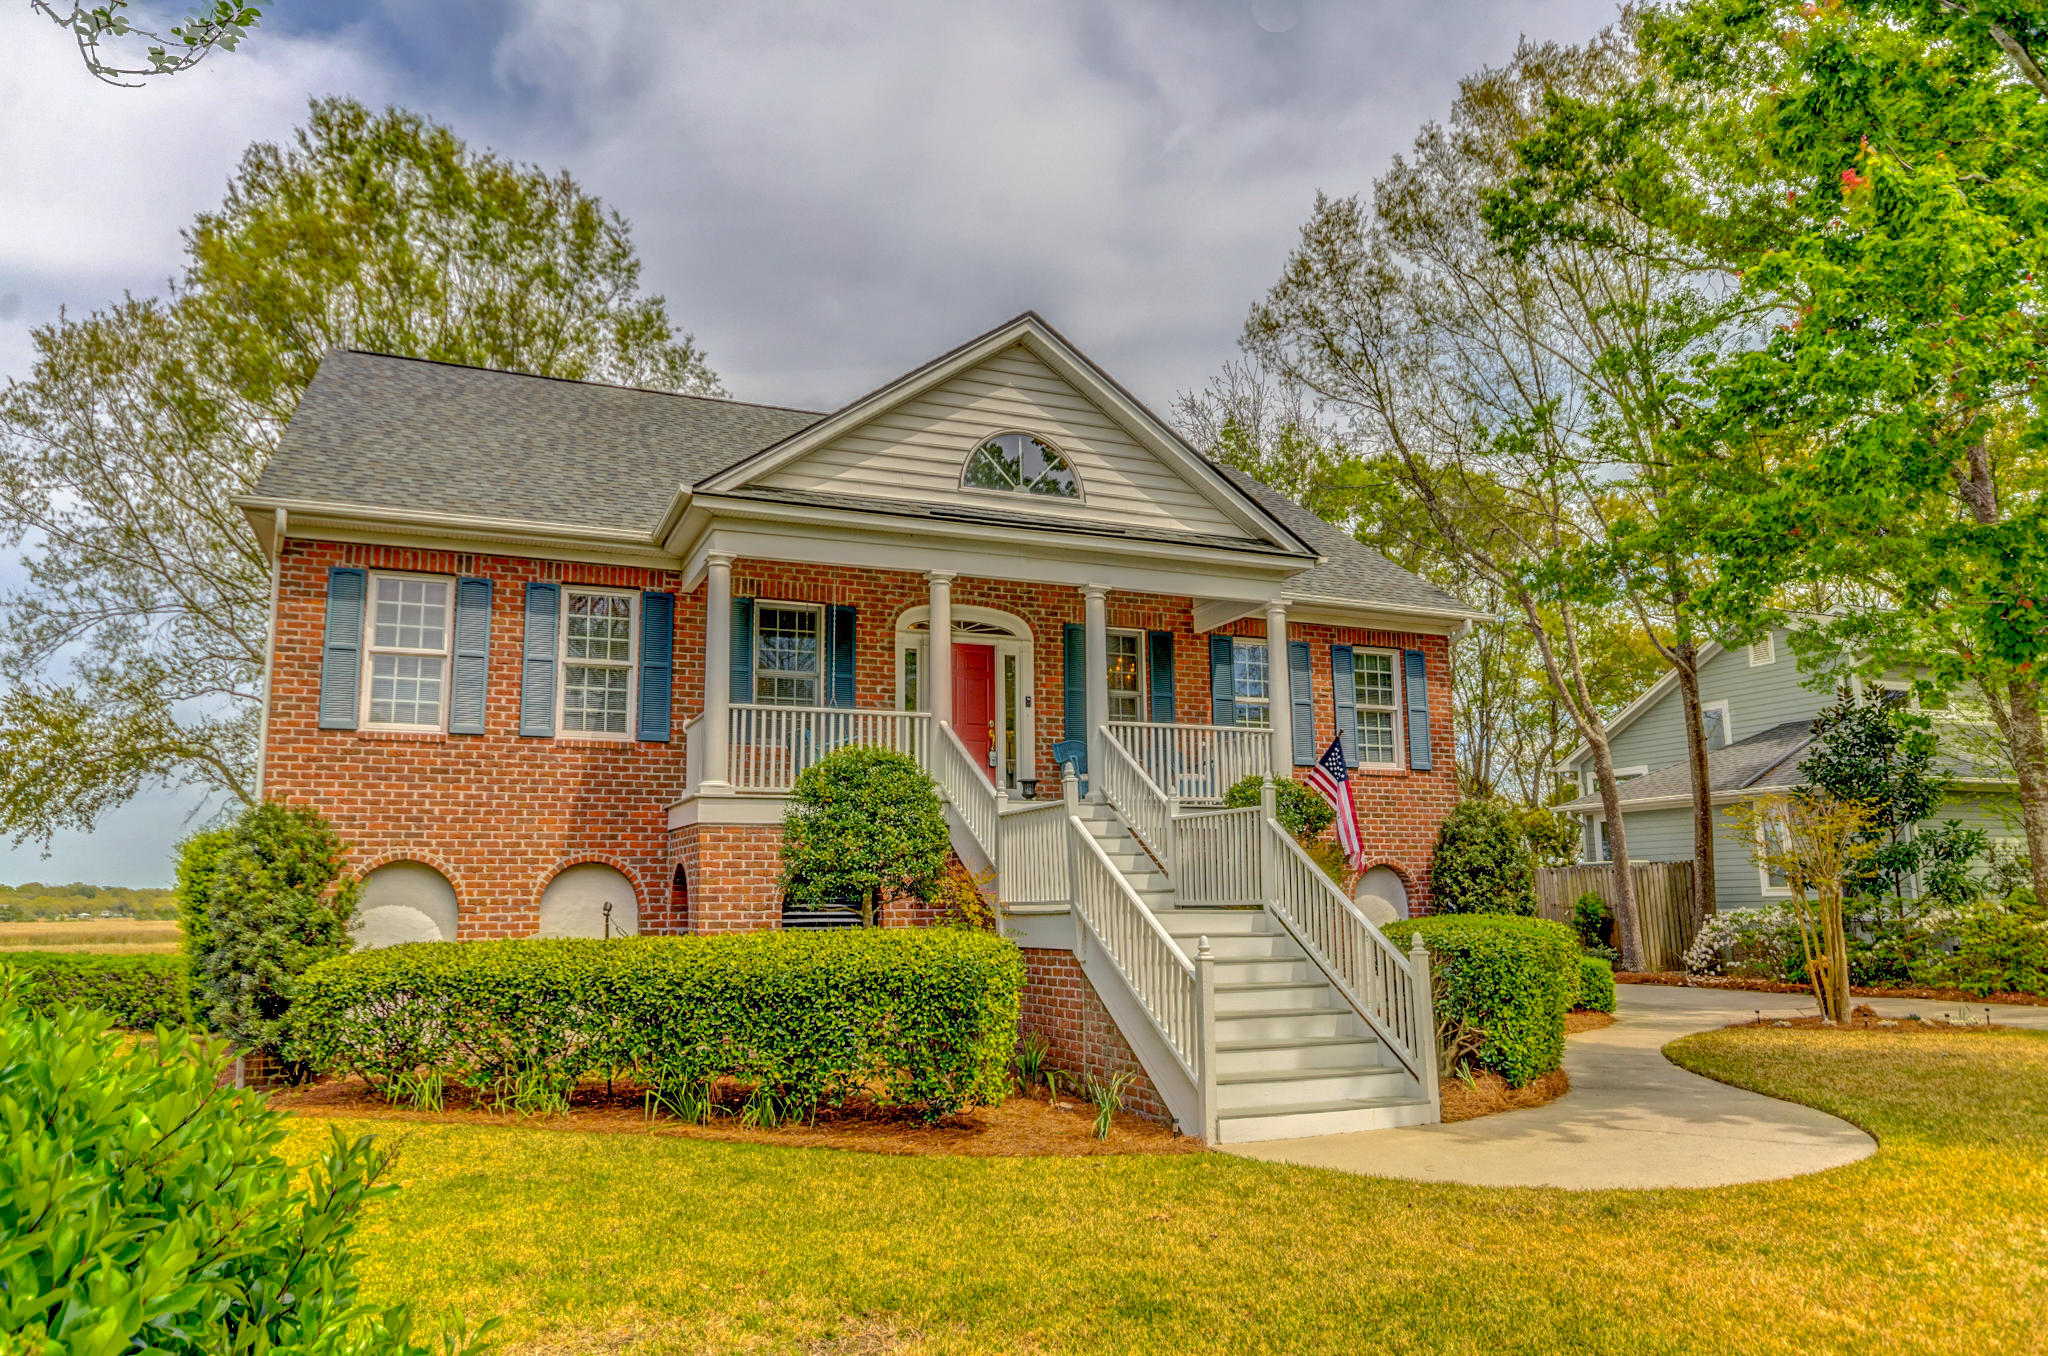 Photo of 2622 Marsh Creek Dr, Charleston, SC 29414